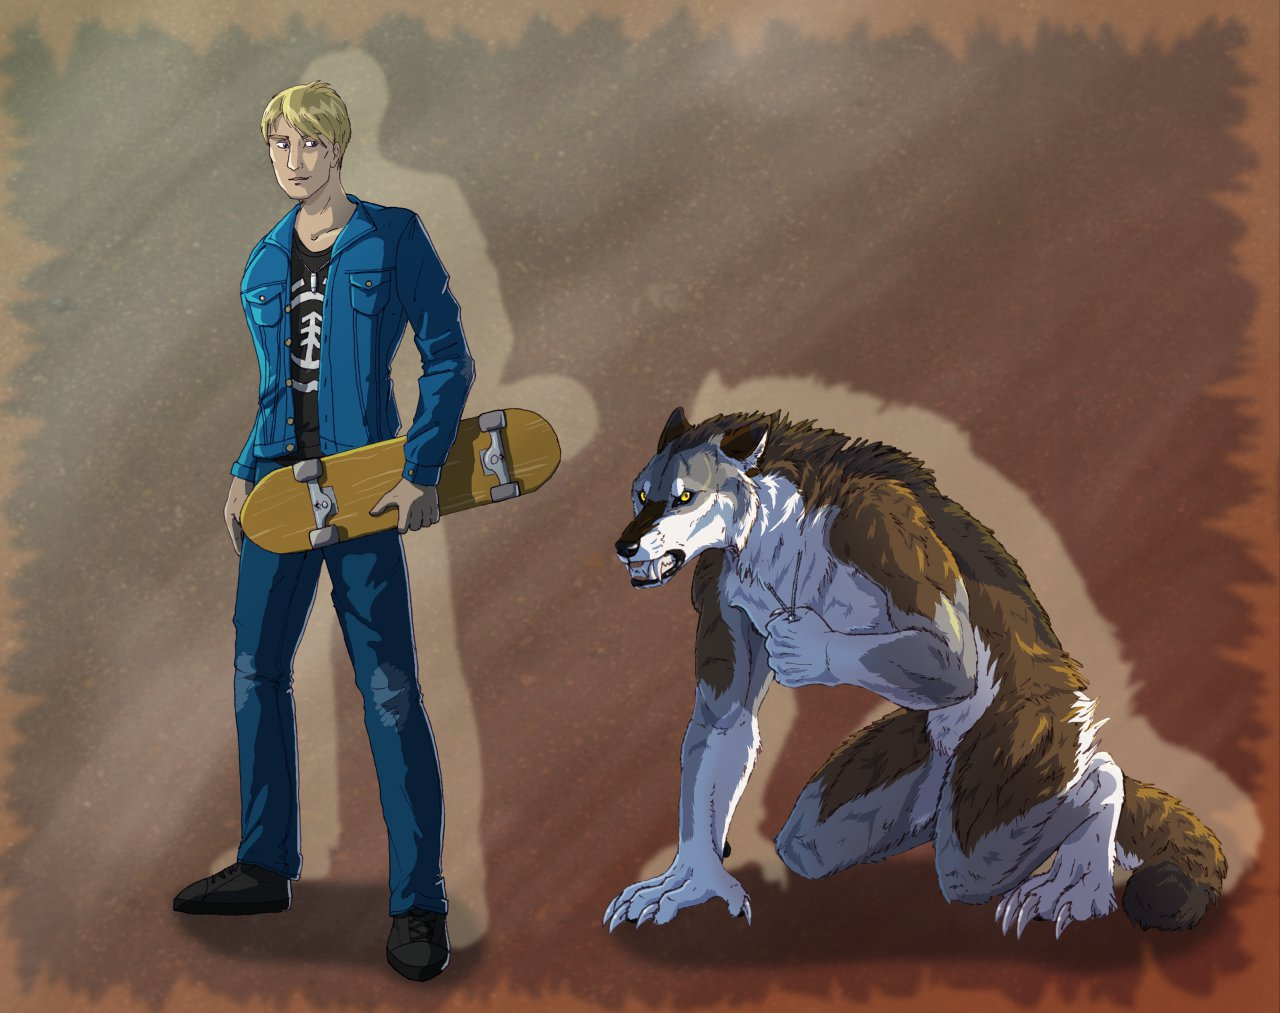 Safeguarding Humanity by Tacimur                              A companion shot of Alex and his werewolf form.                                                          When he shifts for the first time, Alex wonders briefly if the silver of his necklace is what is keeping him sentient. Whether true or not, he doesn't want to risk losing it.